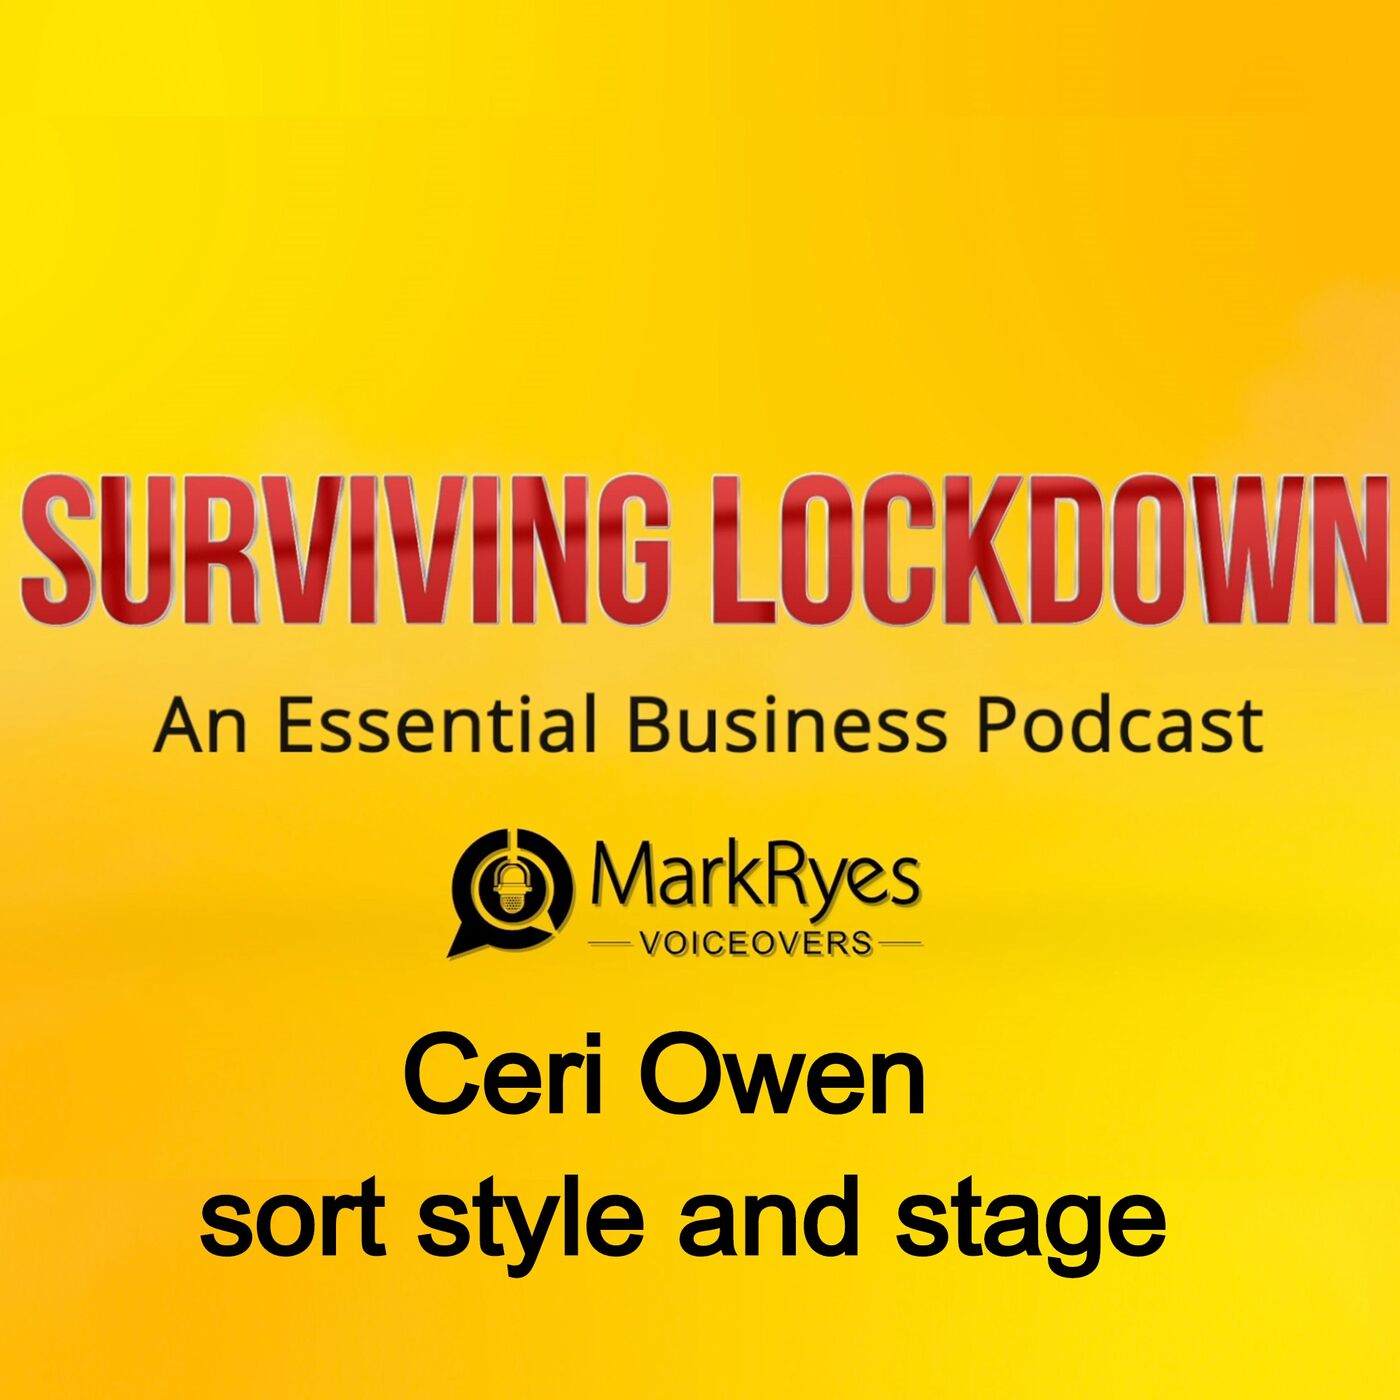 Ceri Owen - sort style and stage